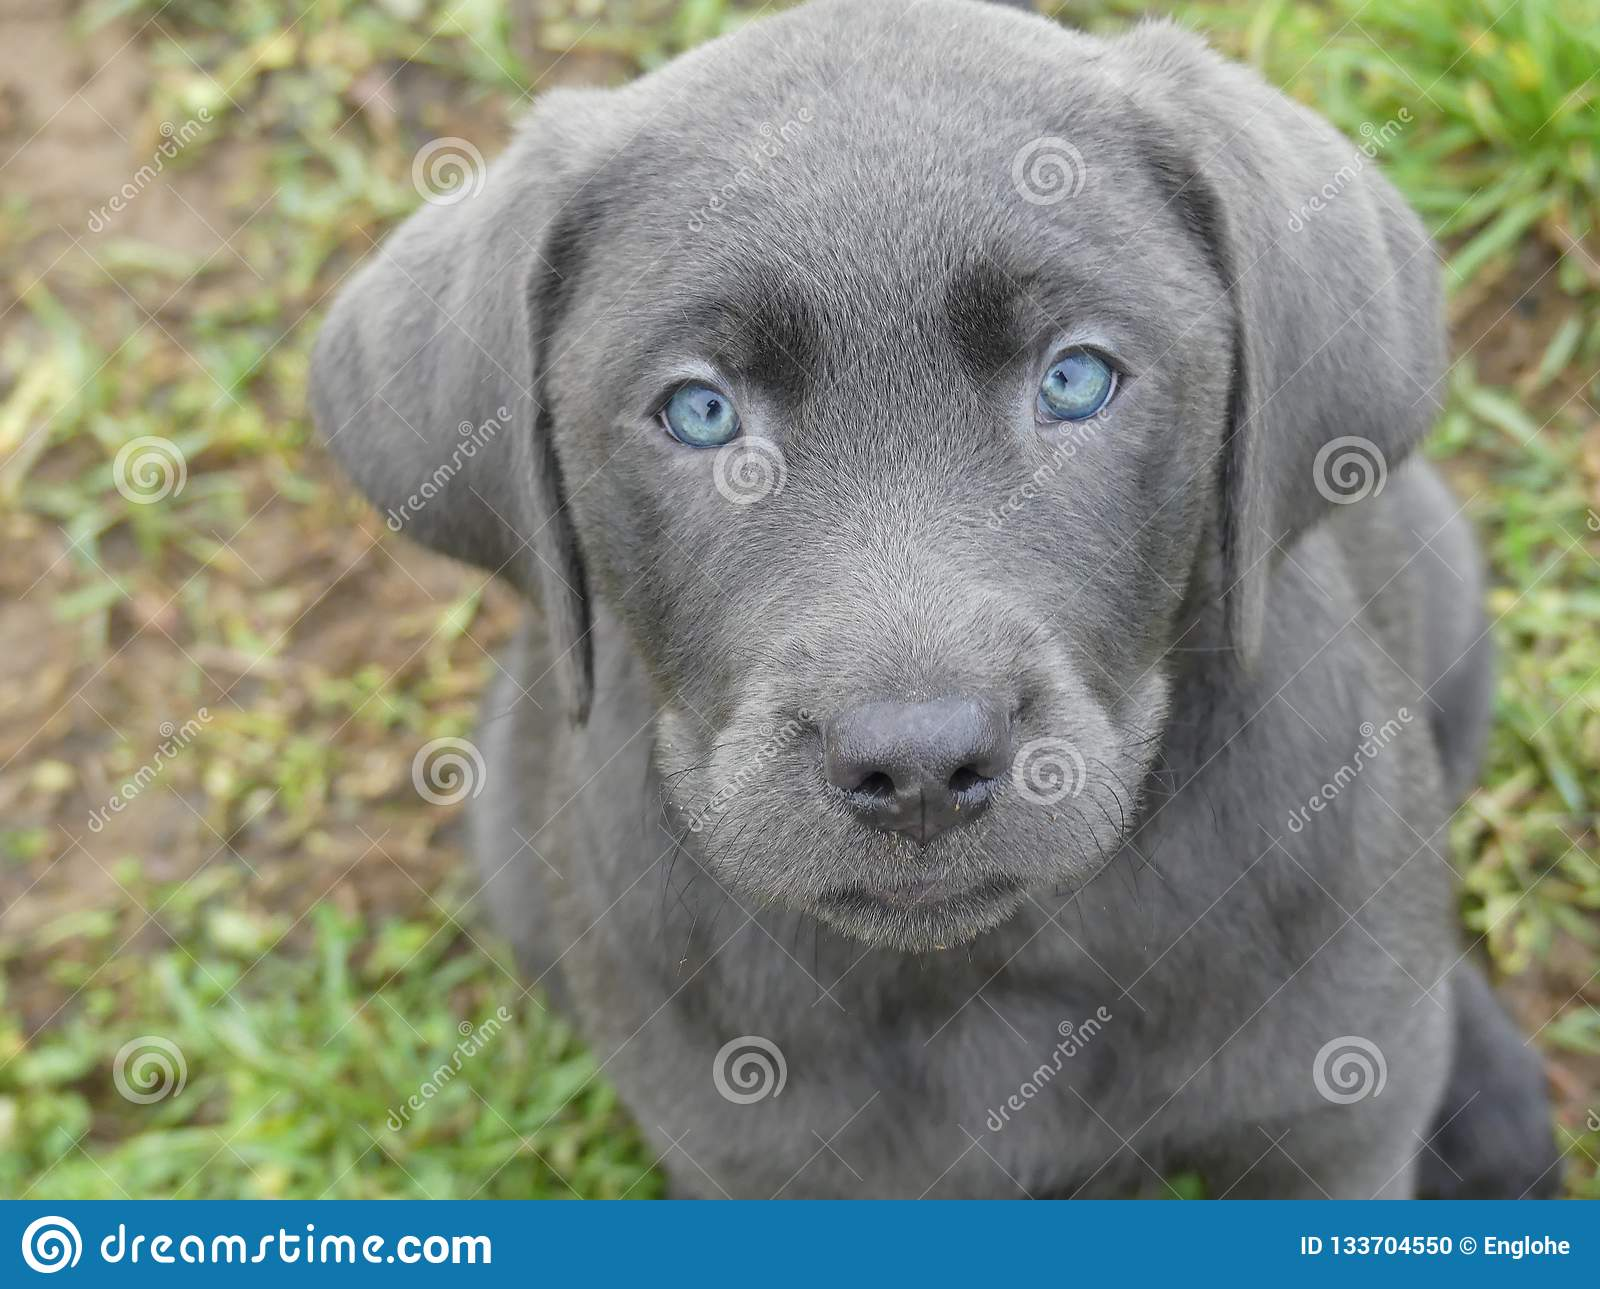 Retriever Charcoal Photos Free Royalty Free Stock Photos From Dreamstime